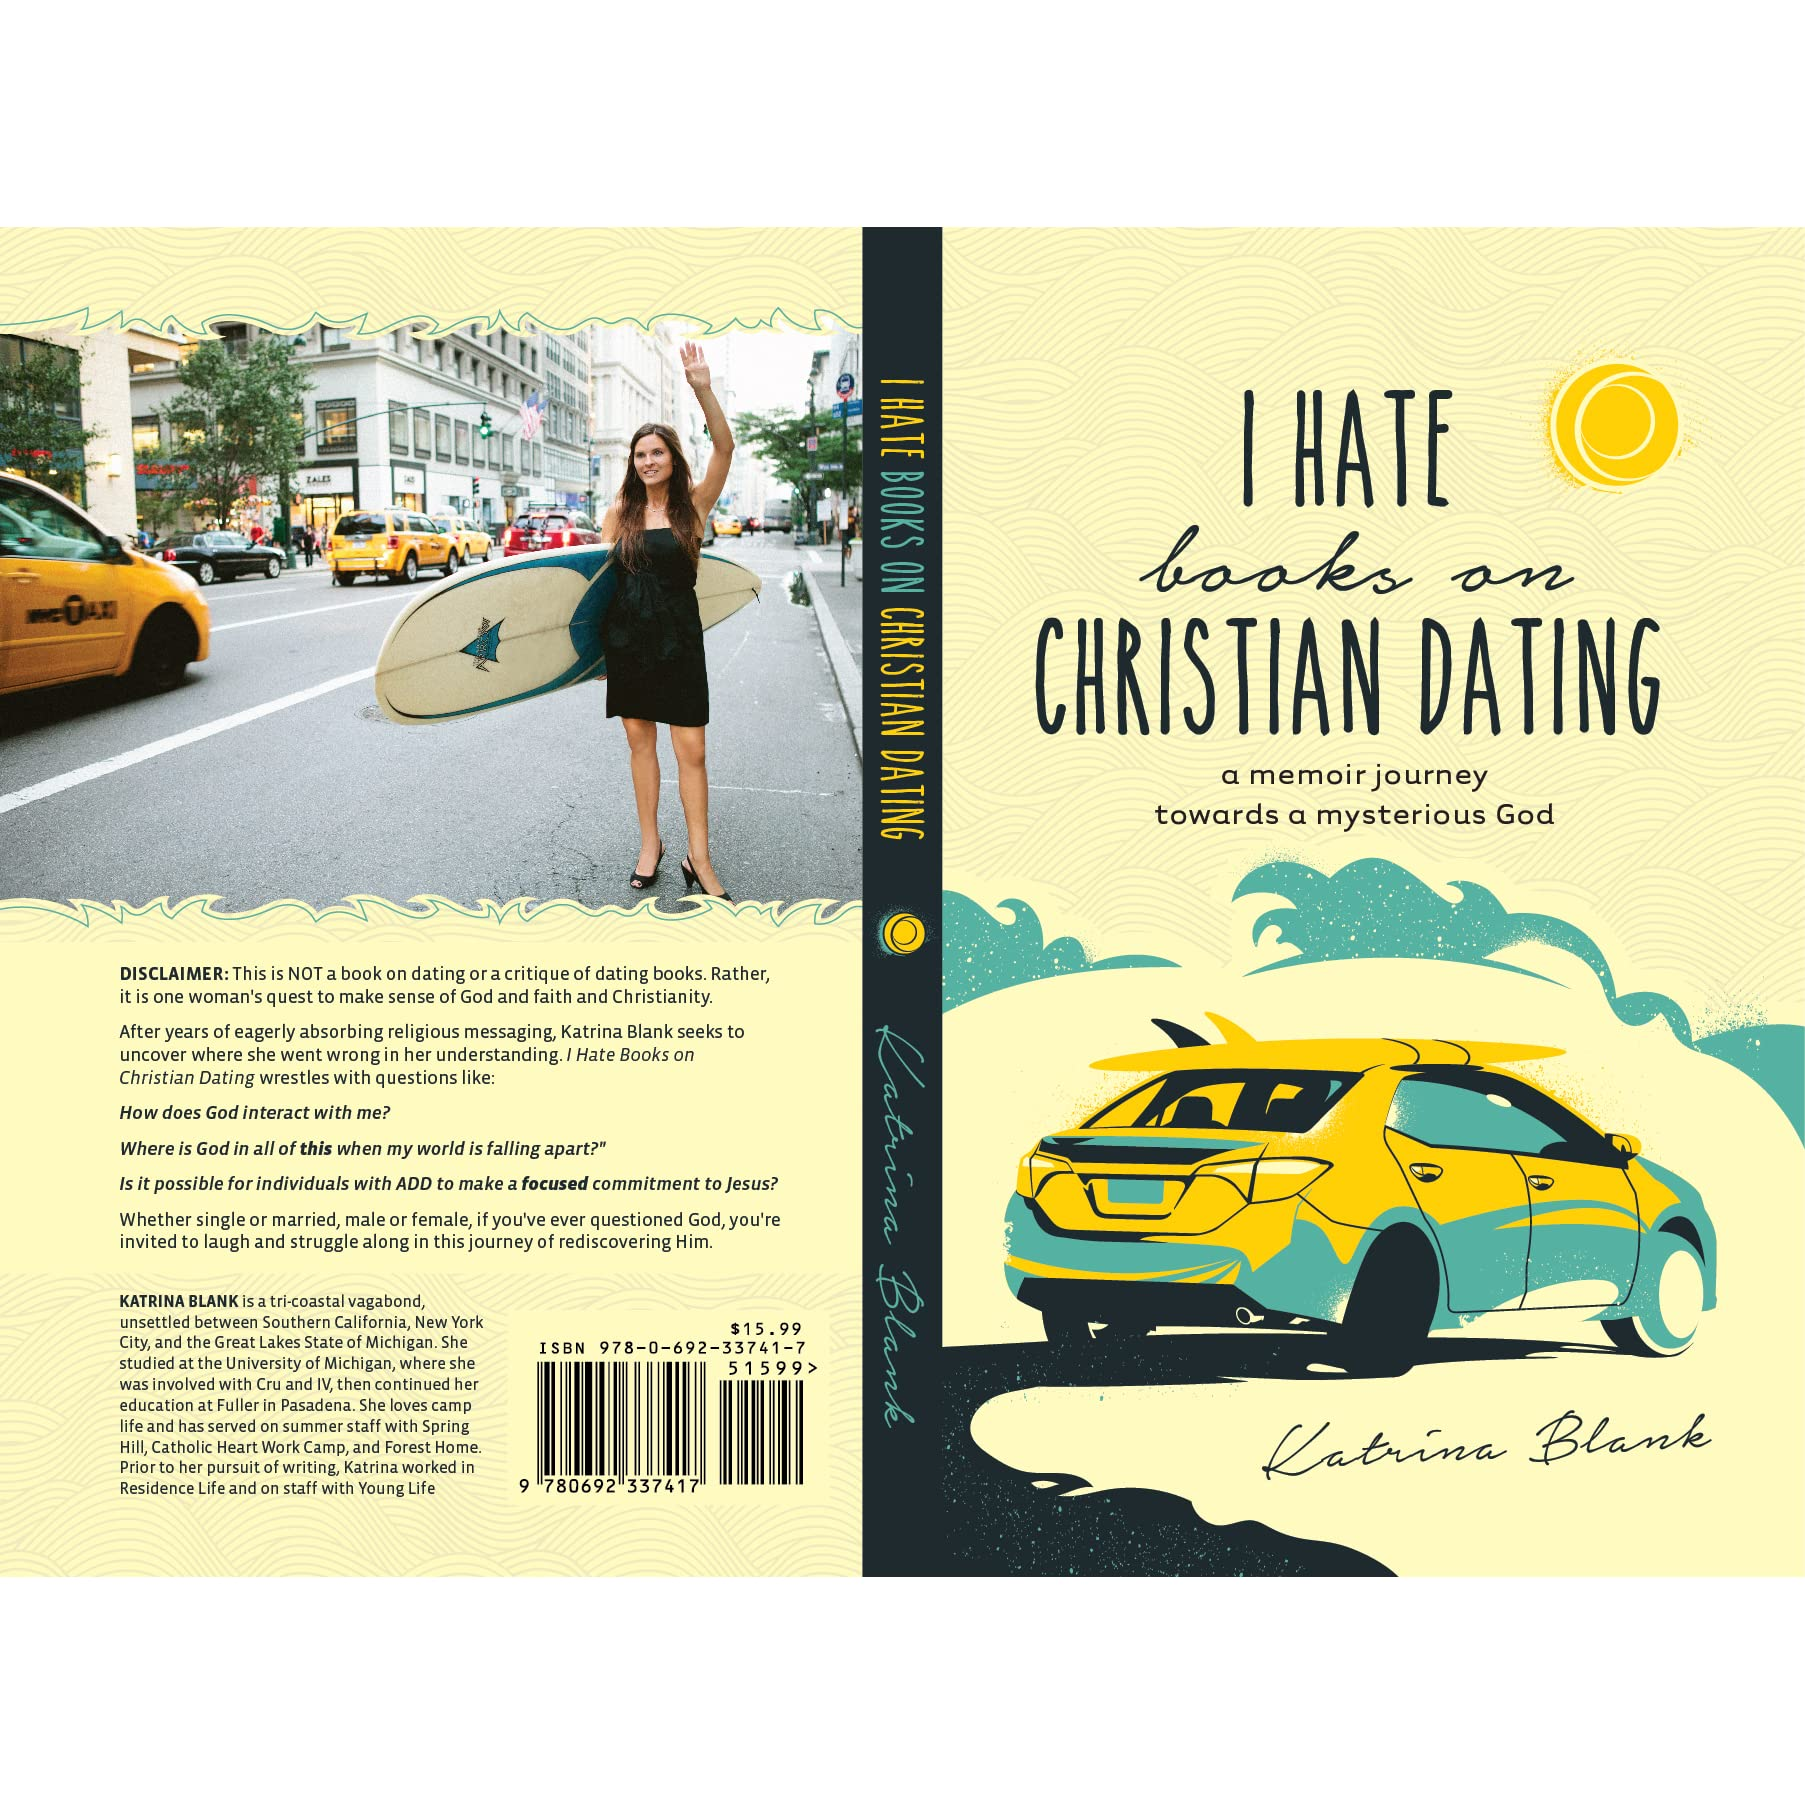 Forum christian discouraged by dating